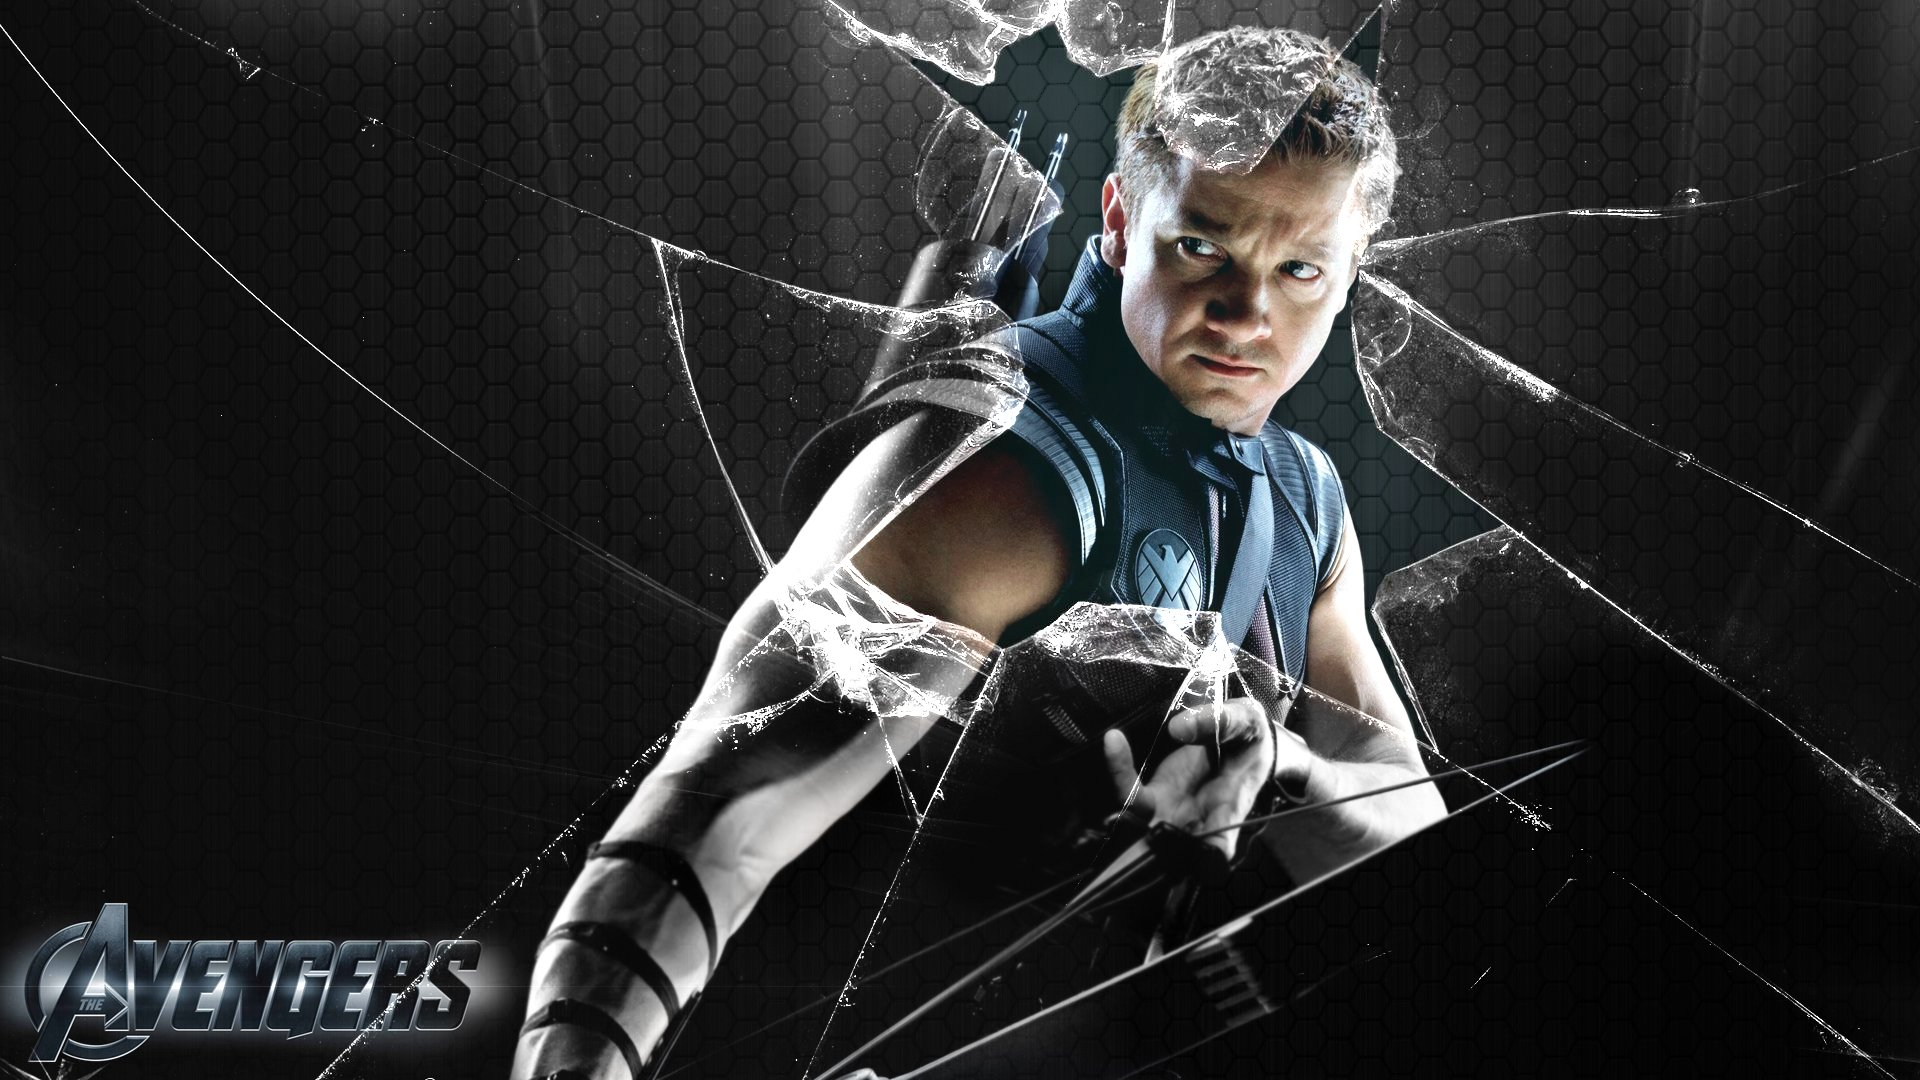 49] Hawkeye Desktop Wallpaper on WallpaperSafari 1920x1080